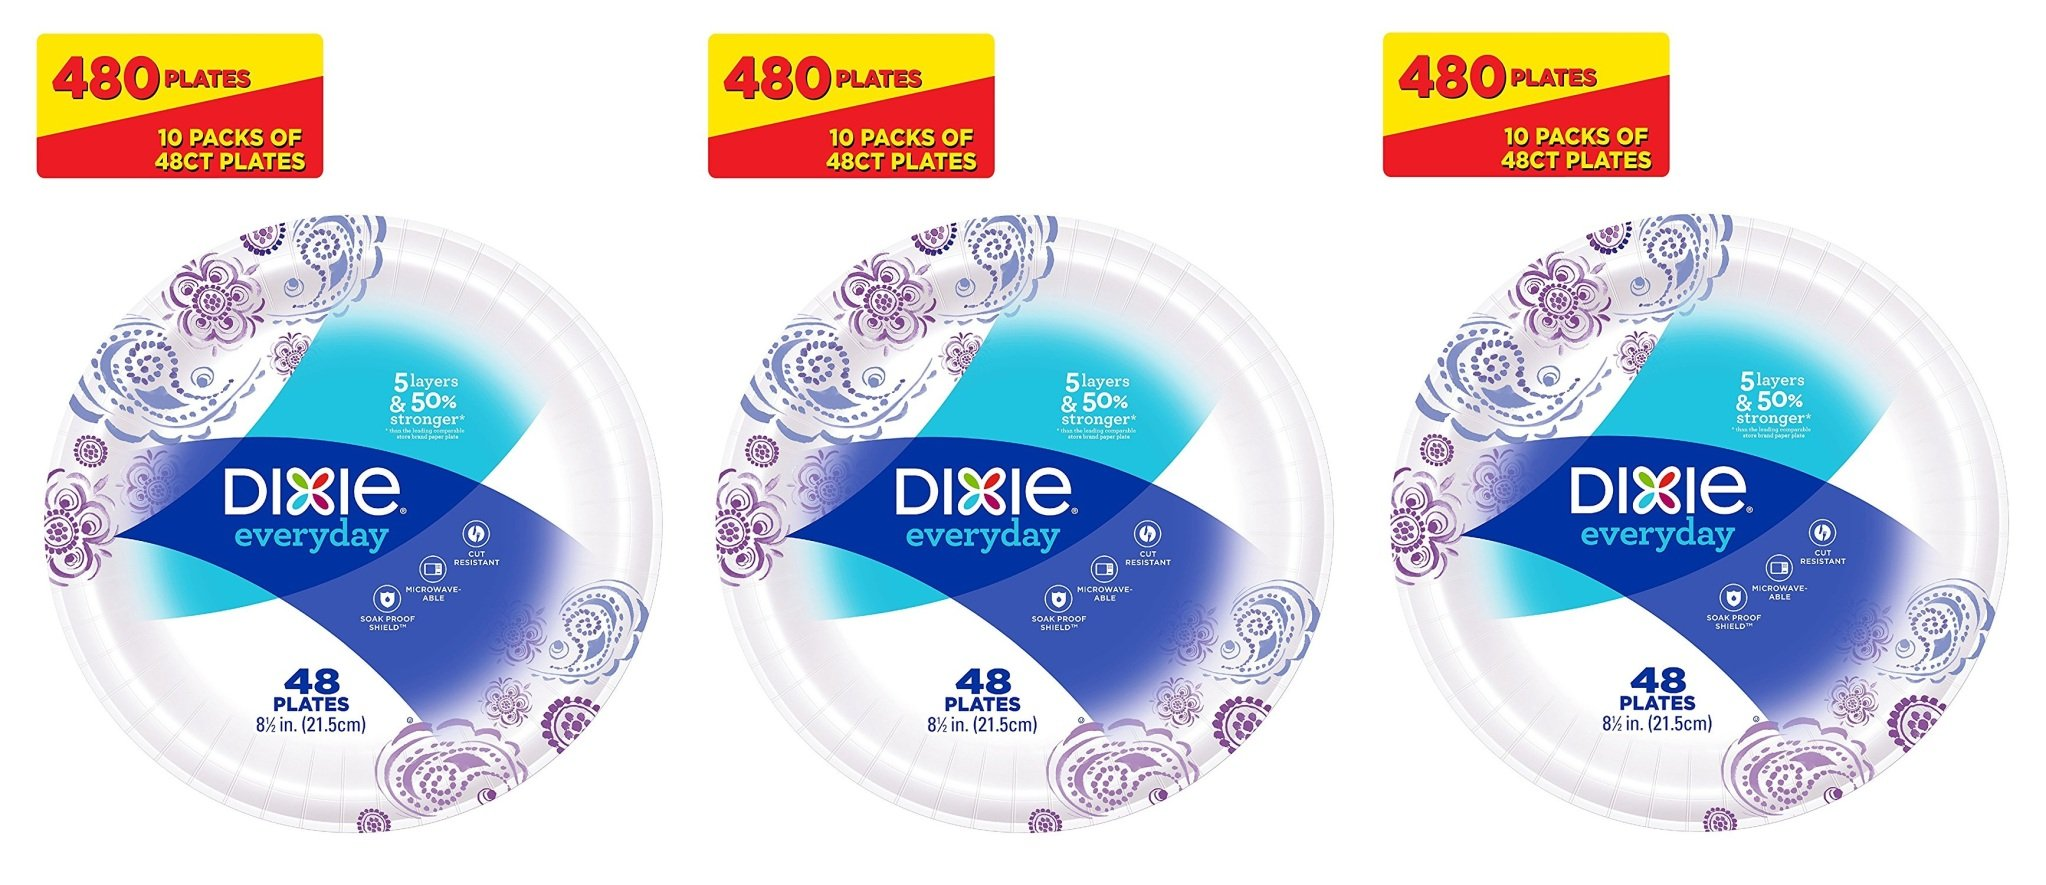 Dixie Everyday Paper Plates, zZPtLK 8.5 Inches, 3Pack of 10 by Dixie